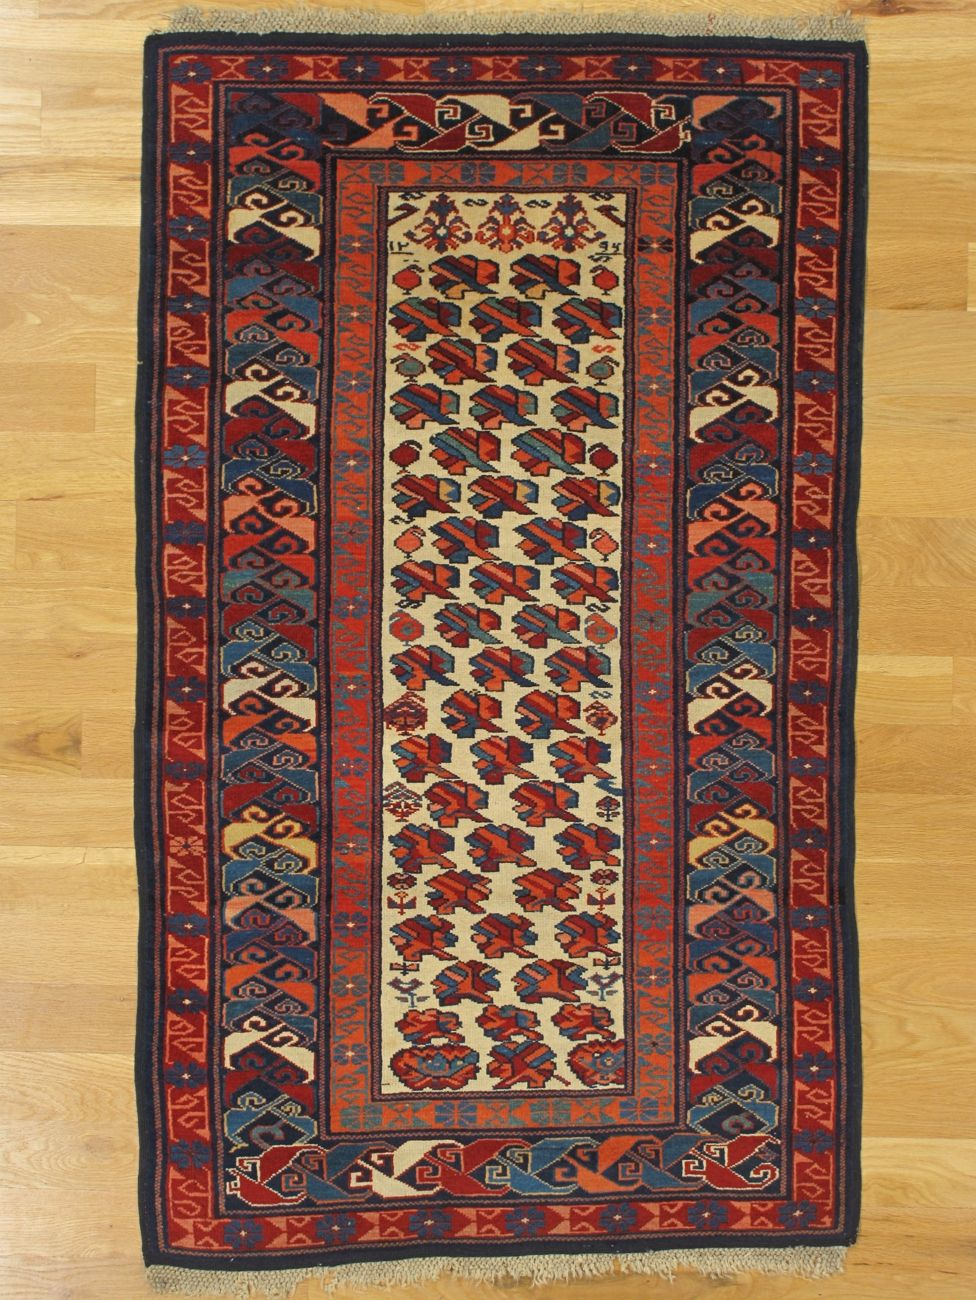 Zeikhour Rug From Eastern Caucasus West Coast Of The Caspian Sea Age Dated 1879 Size 4 10 X2 10 147x86 Cm Sold Rugs Kerman Rugs Antique Rugs